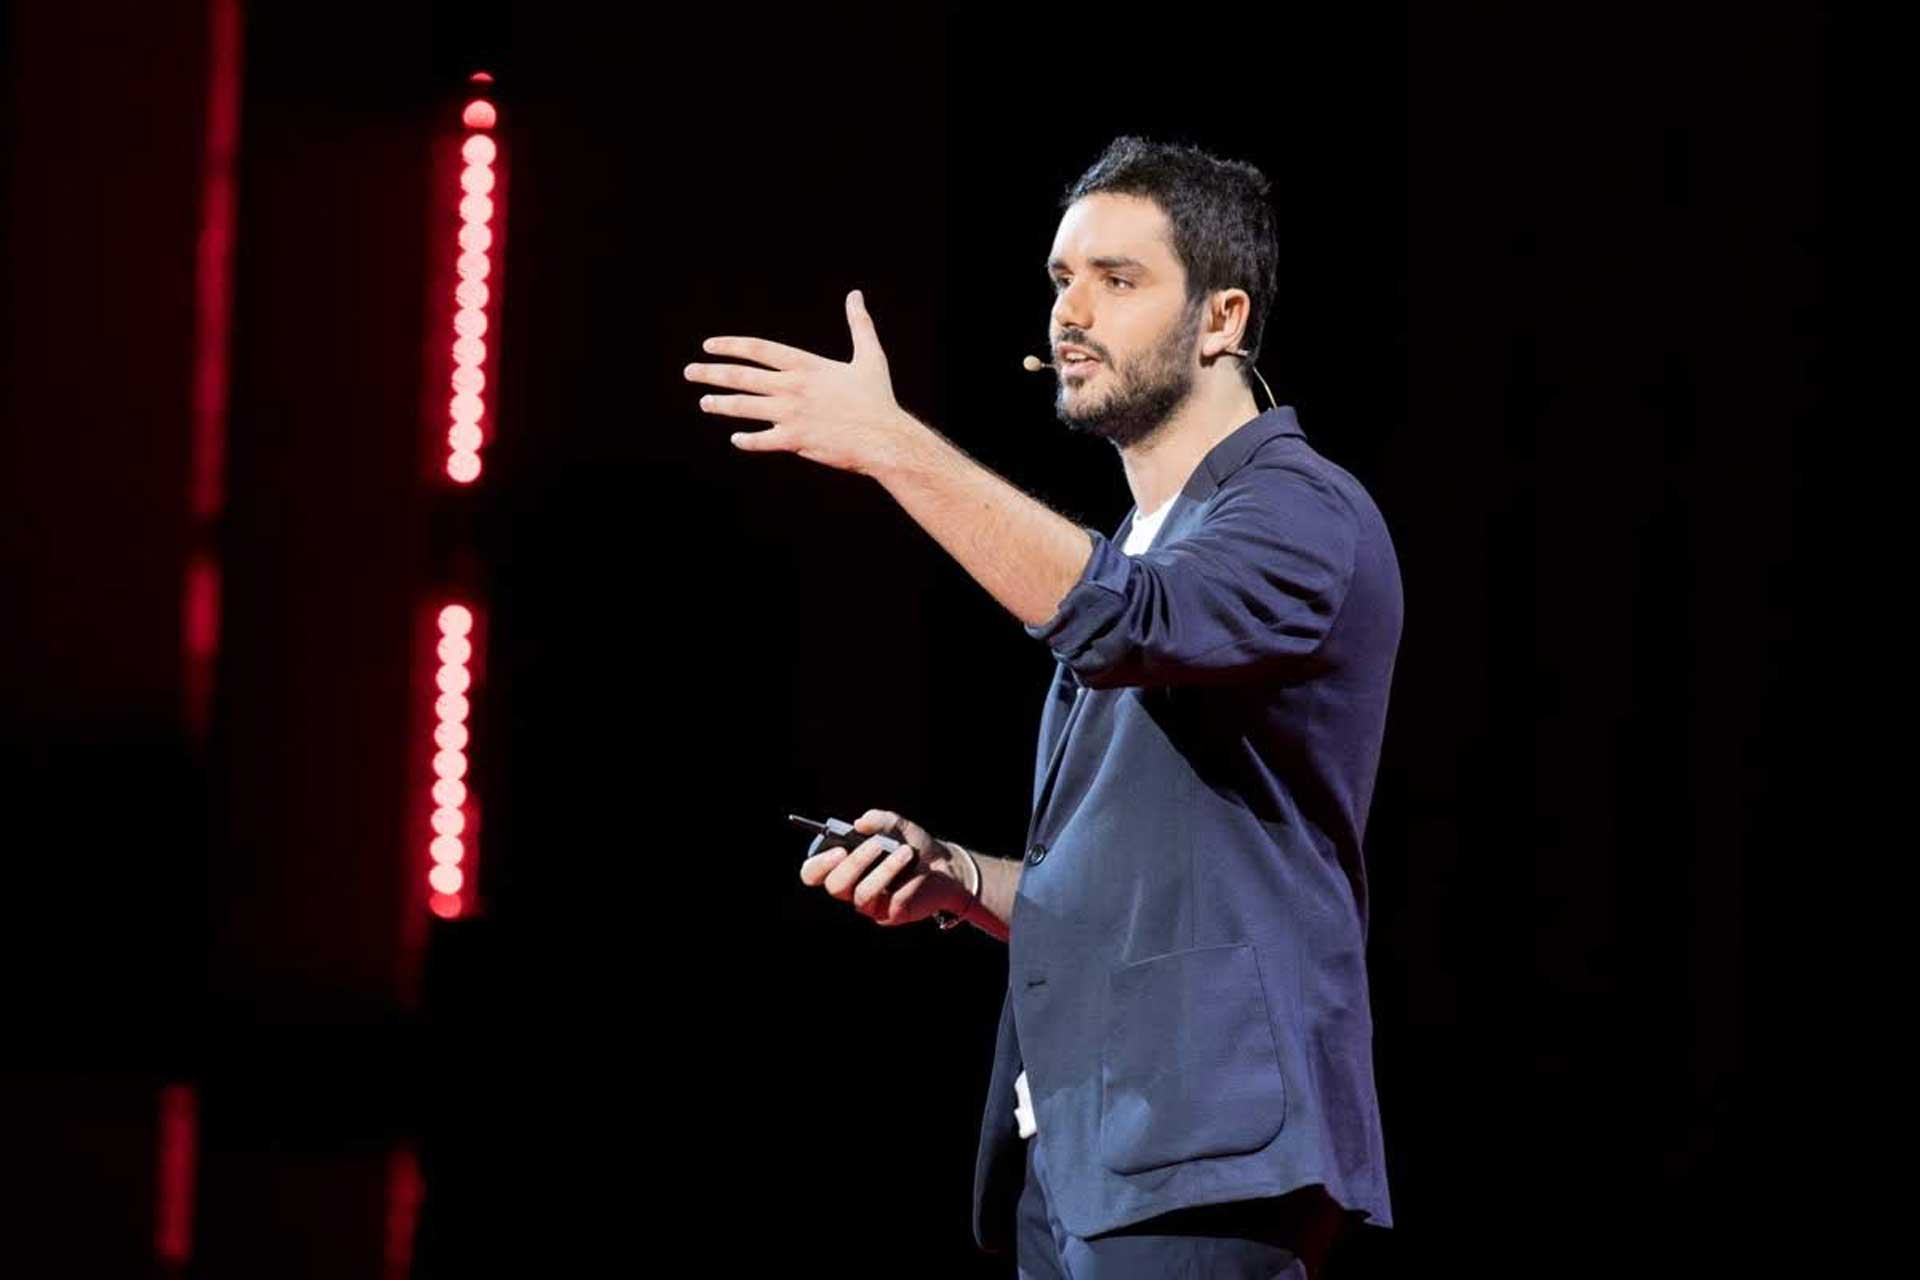 conference-TEDxParis-2017-13.jpg